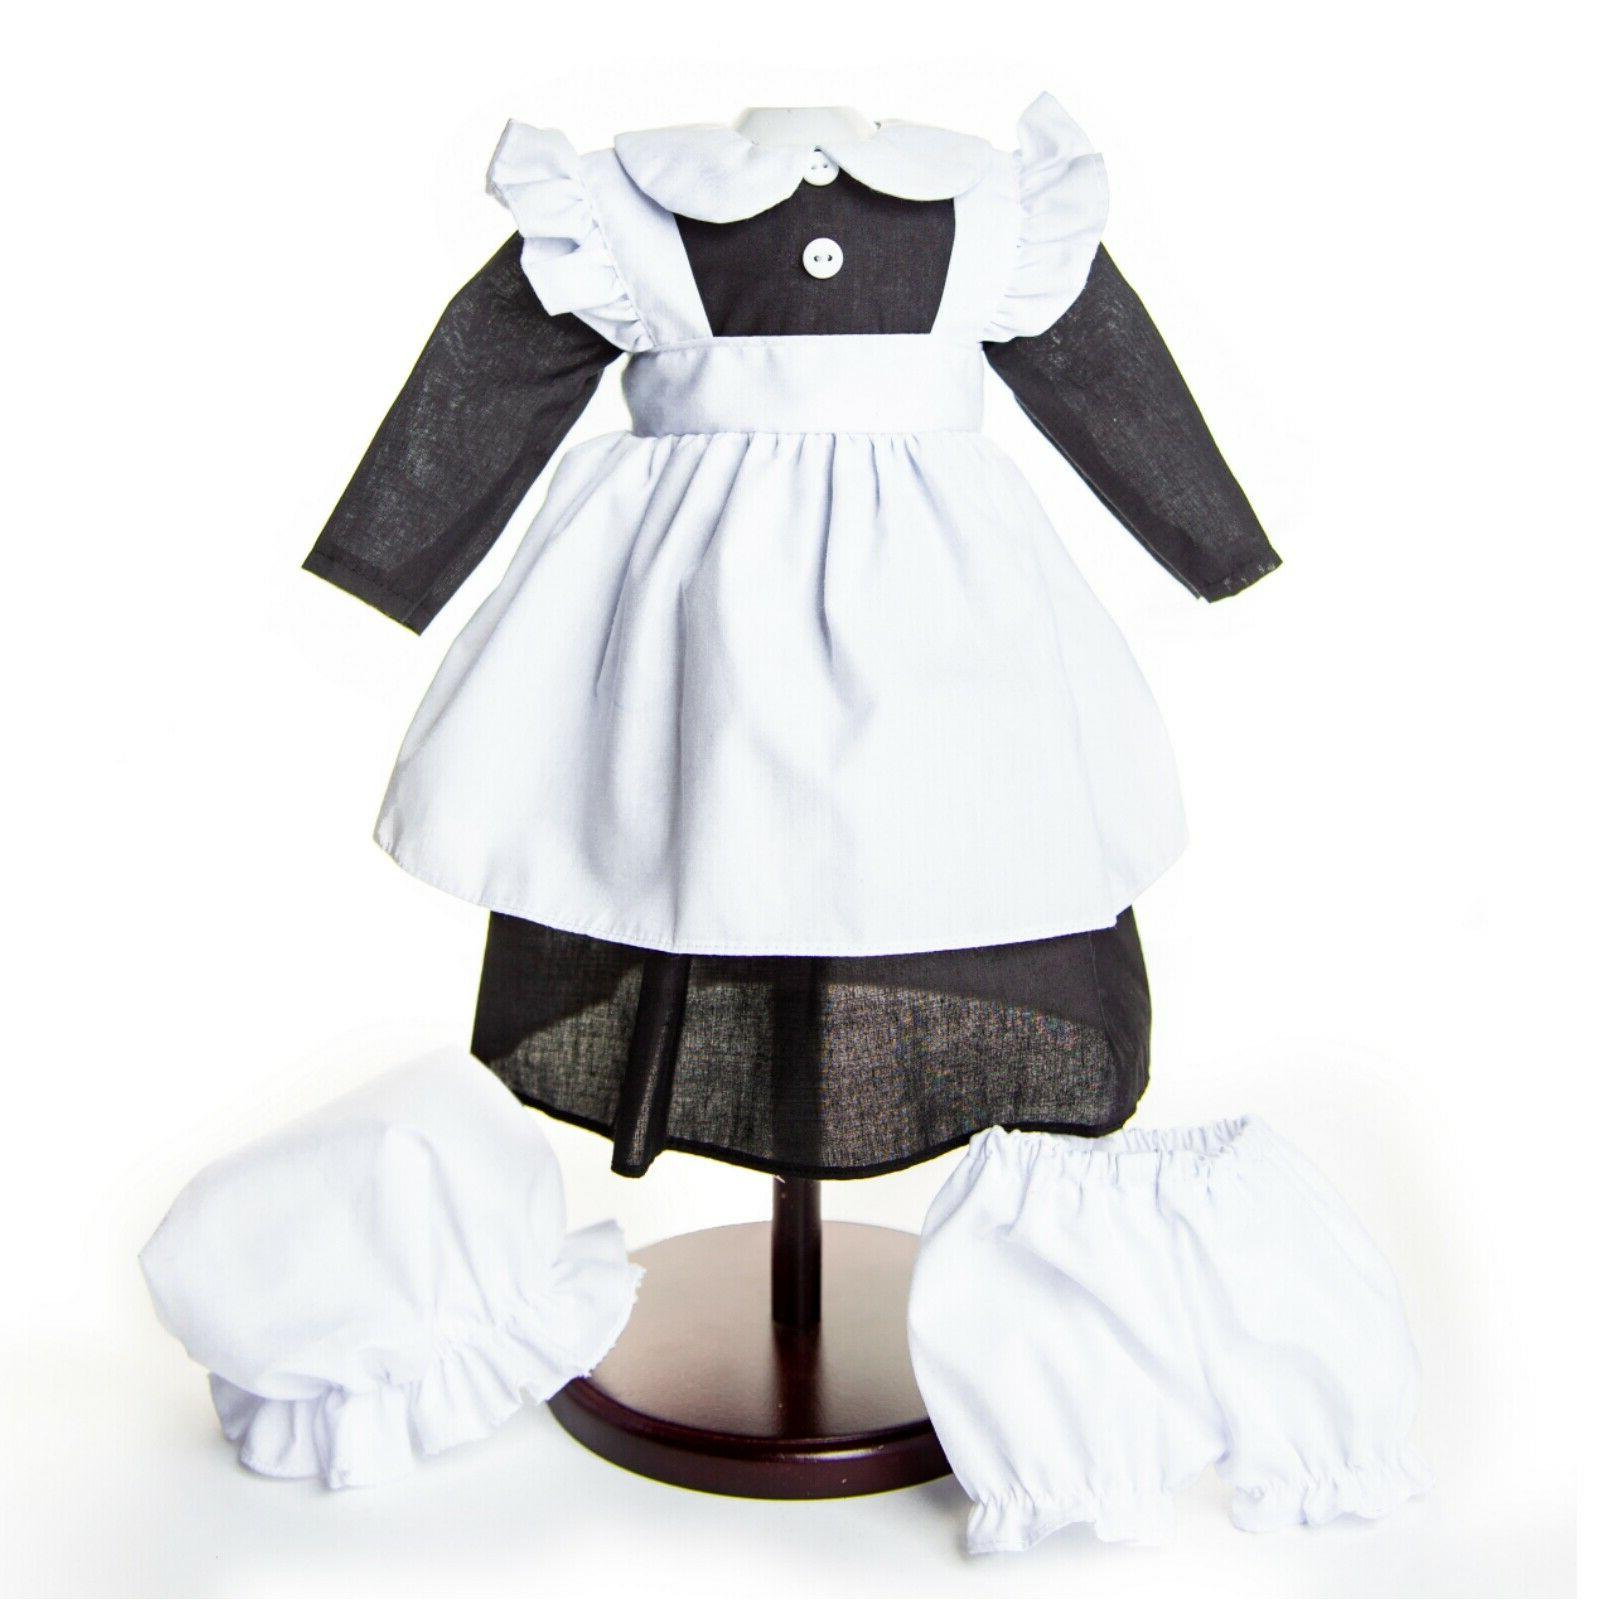 4 HISTORIC KITCHEN MAID OUTFIT Girl